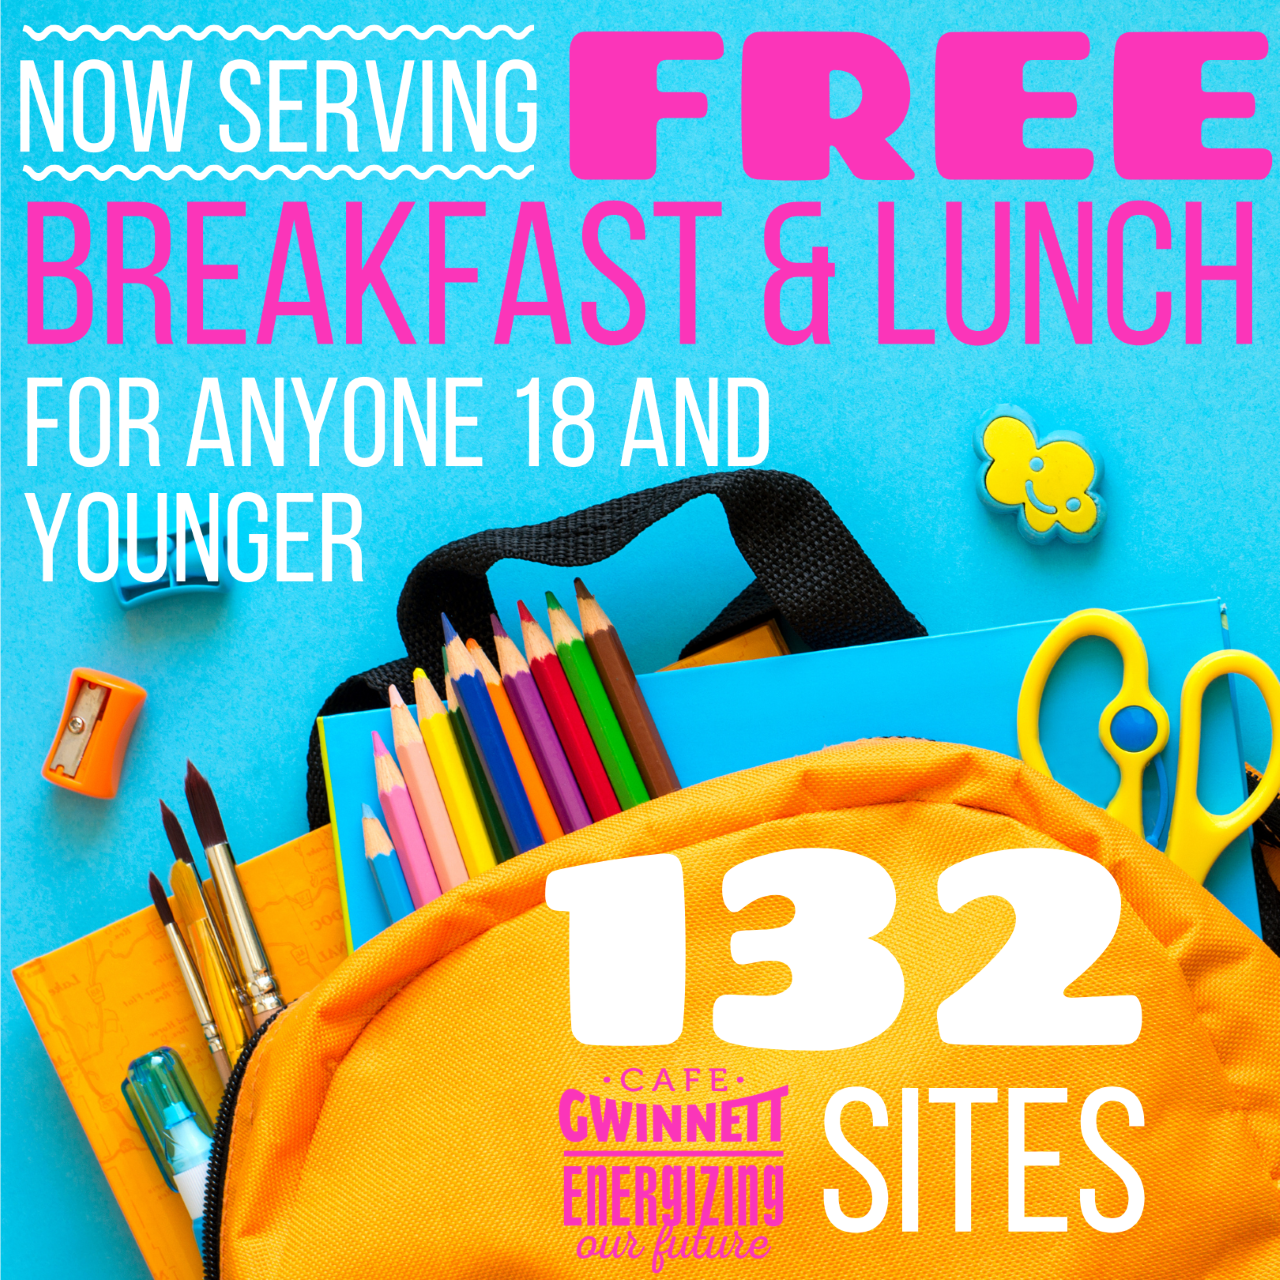 Free Breakfast and Lunch Image